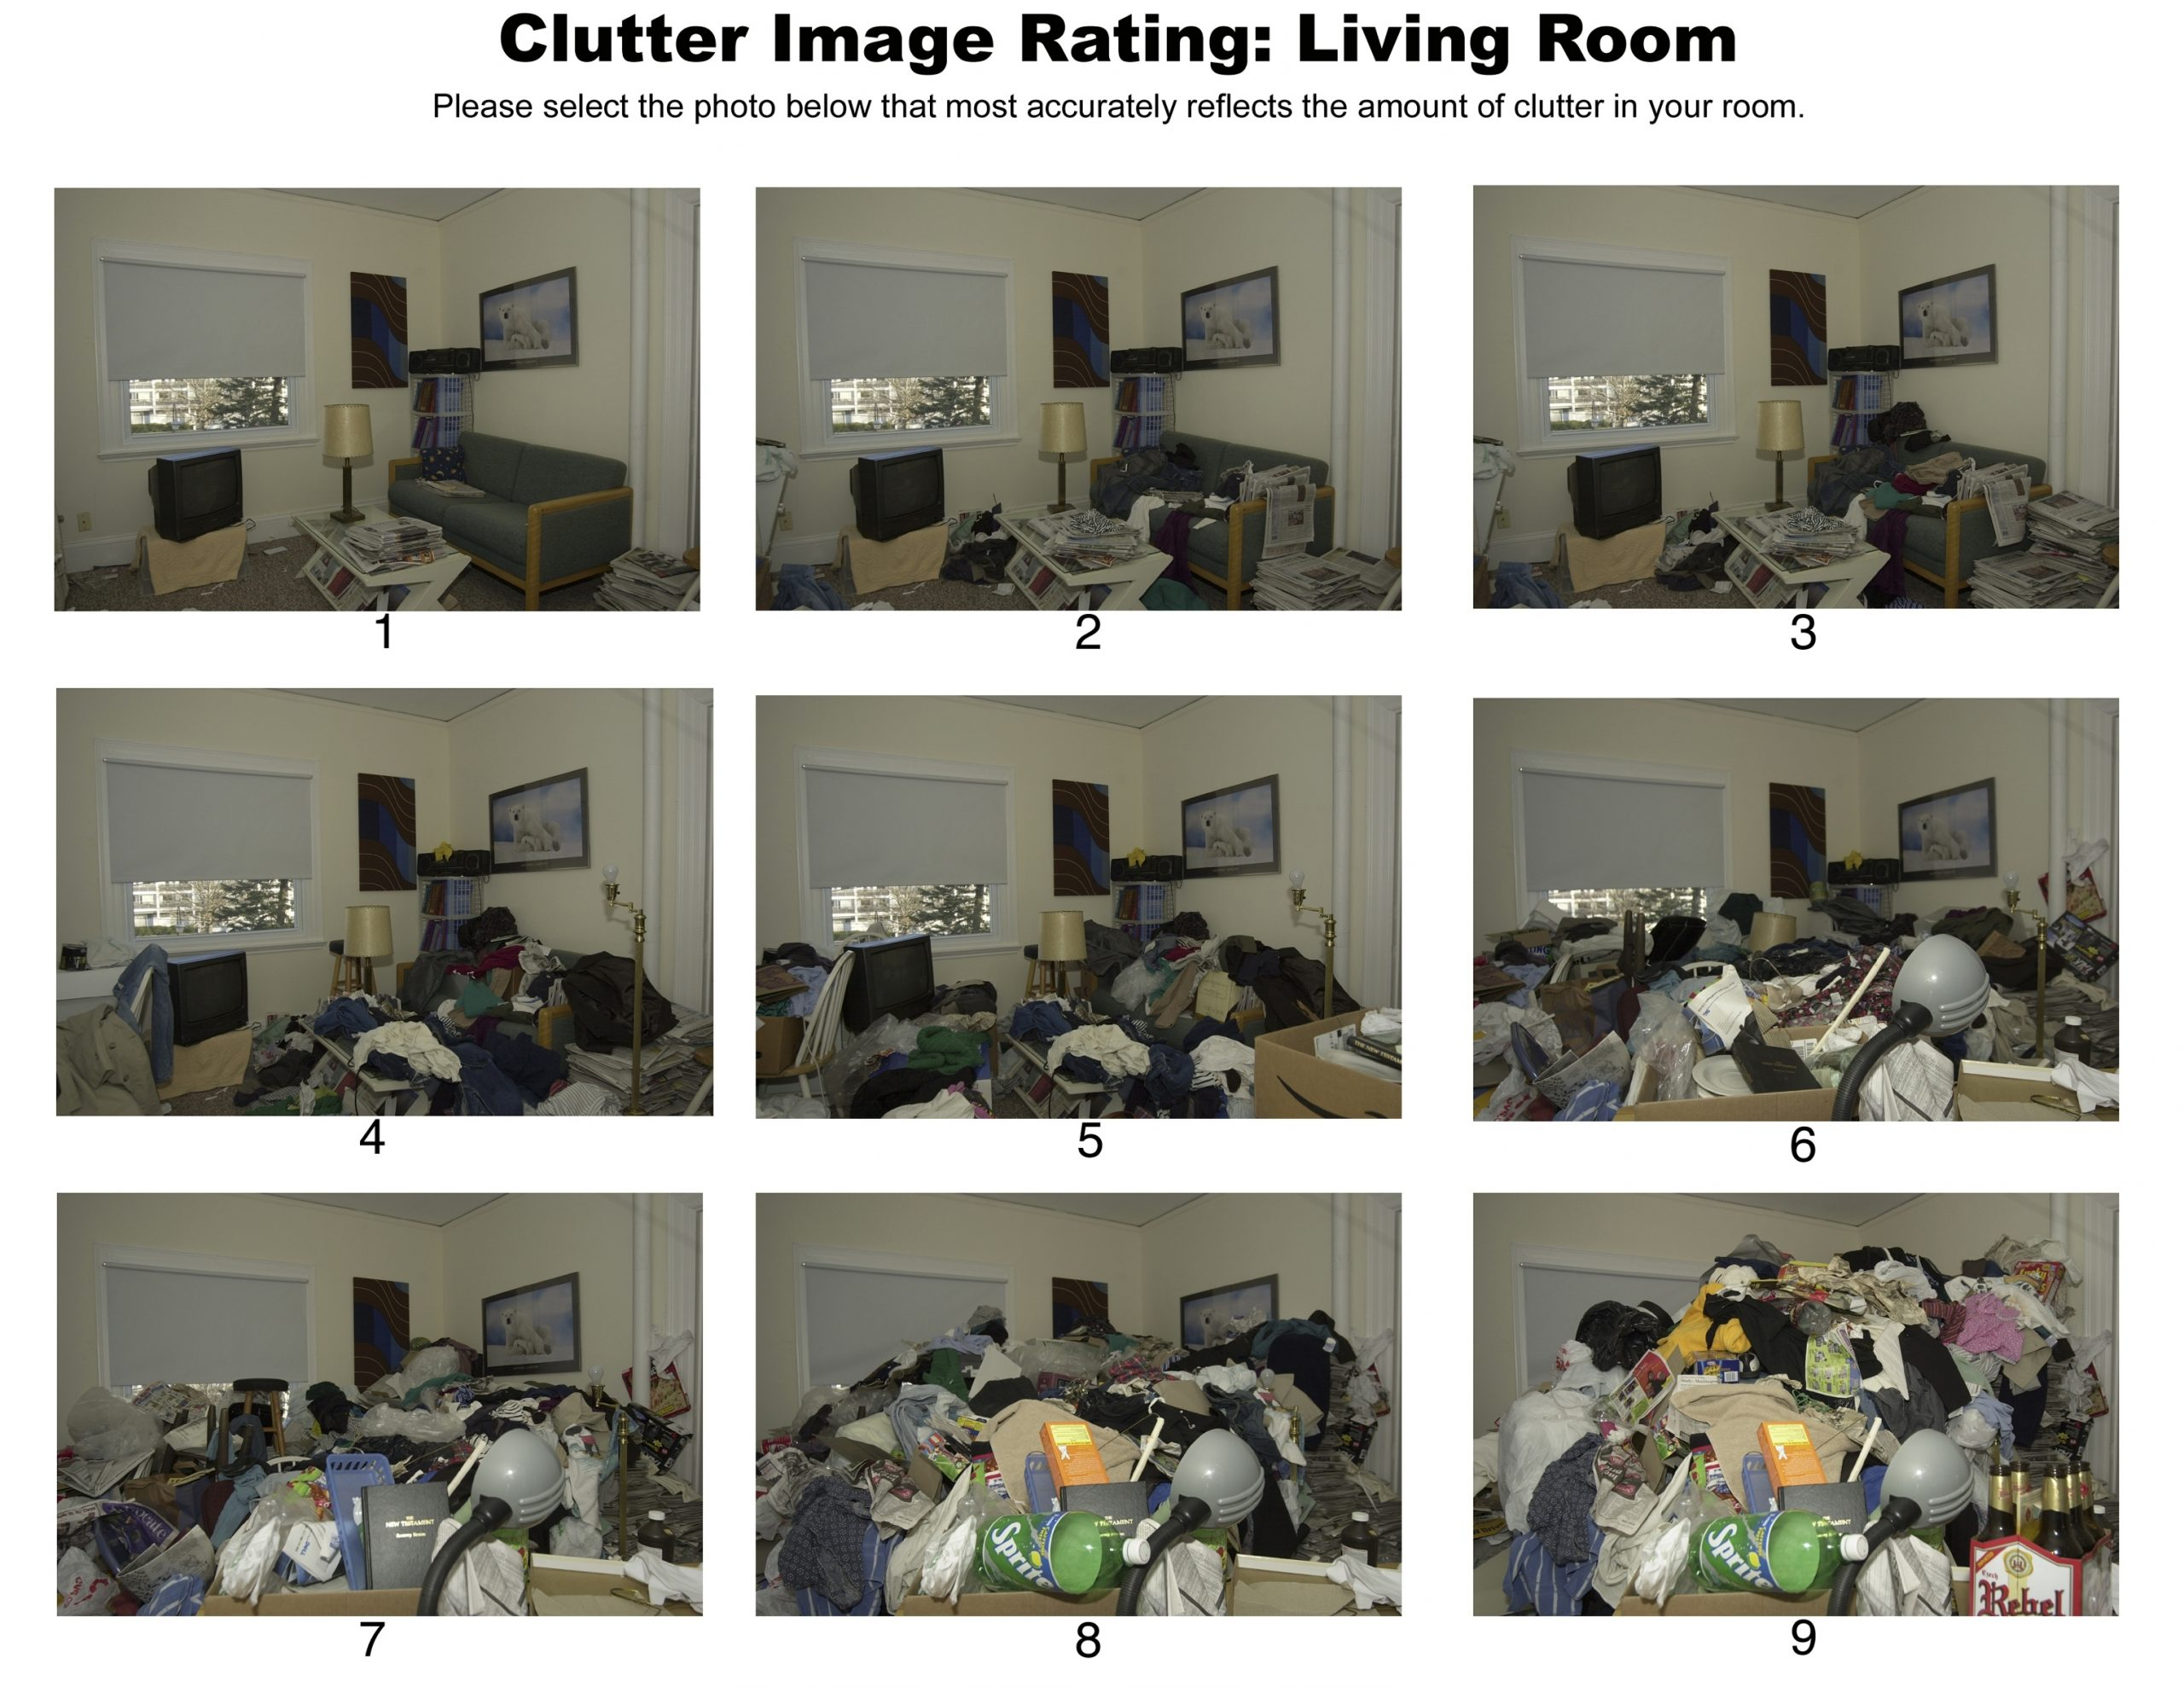 Clutter Image Rating - CloudsEnd CIC